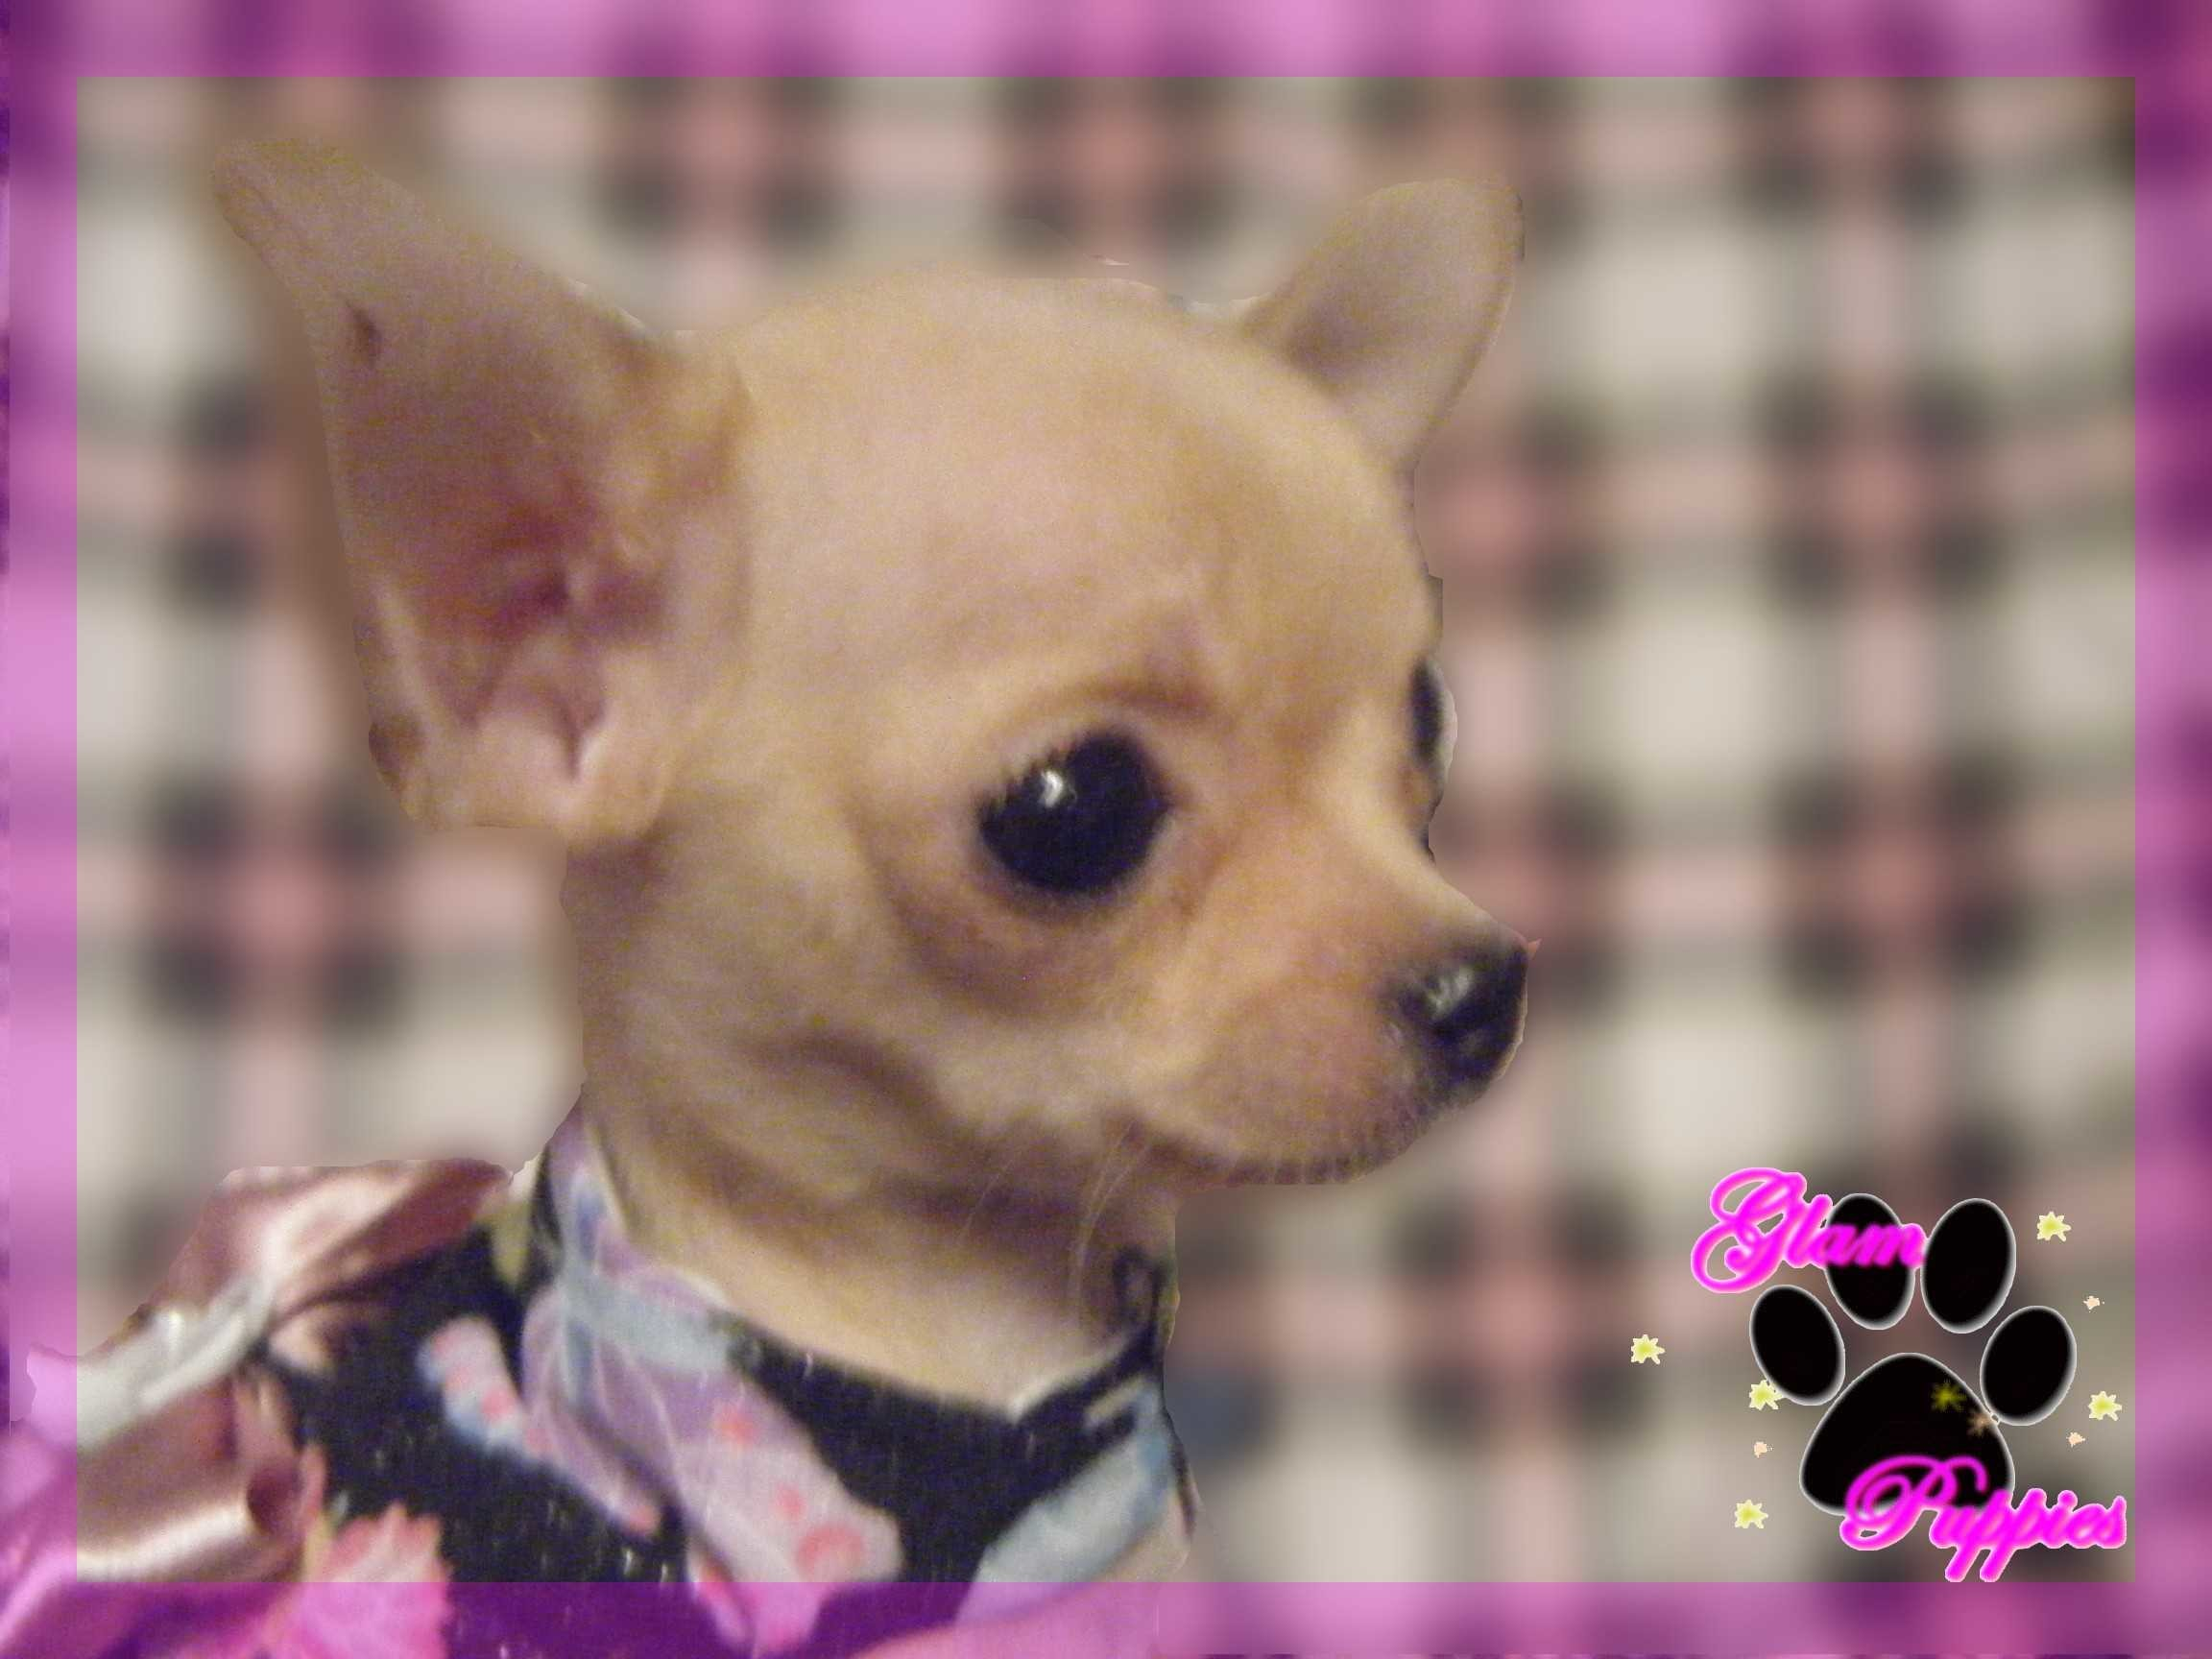 Res: 2304x1728, About Chihuahua Chihuahuas Dog Wallpaper With Pictures Of Puppies High  Quality For Photos Resolution Desktop